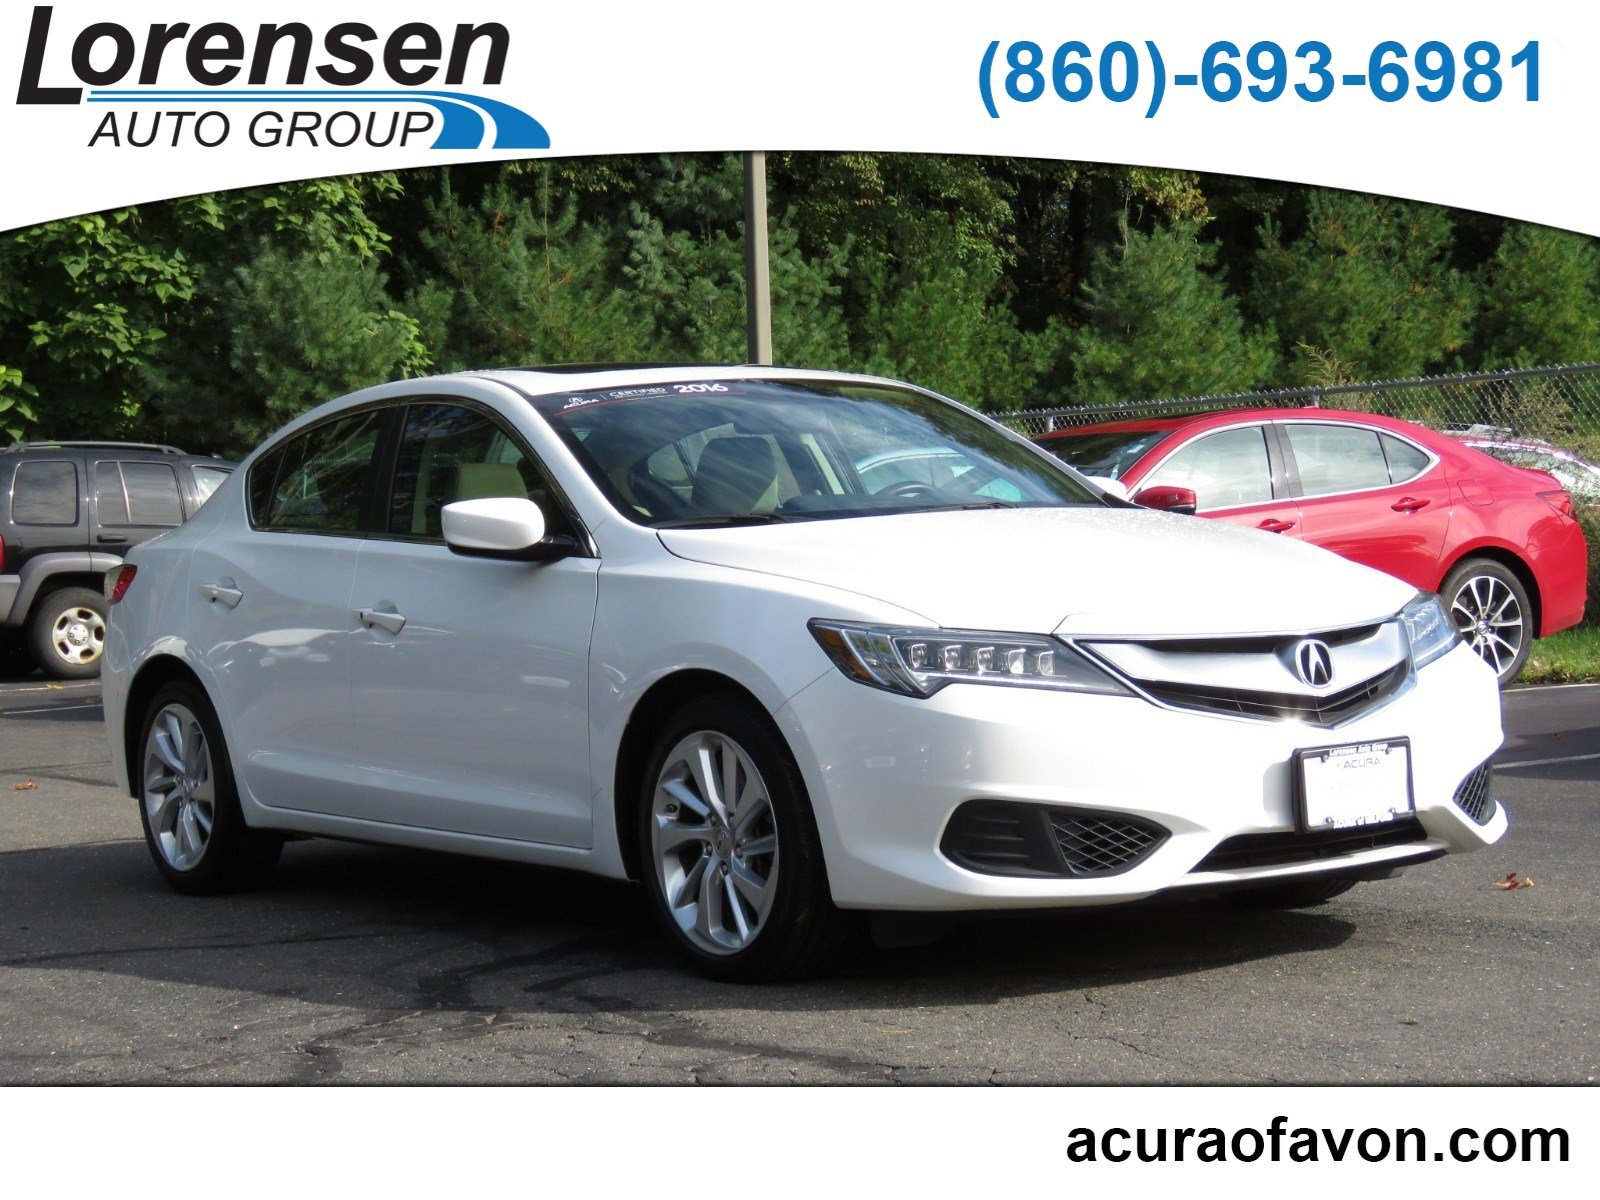 Certified Pre Owned 2016 Acura ILX 4dr Sdn 4dr Car in Watertown